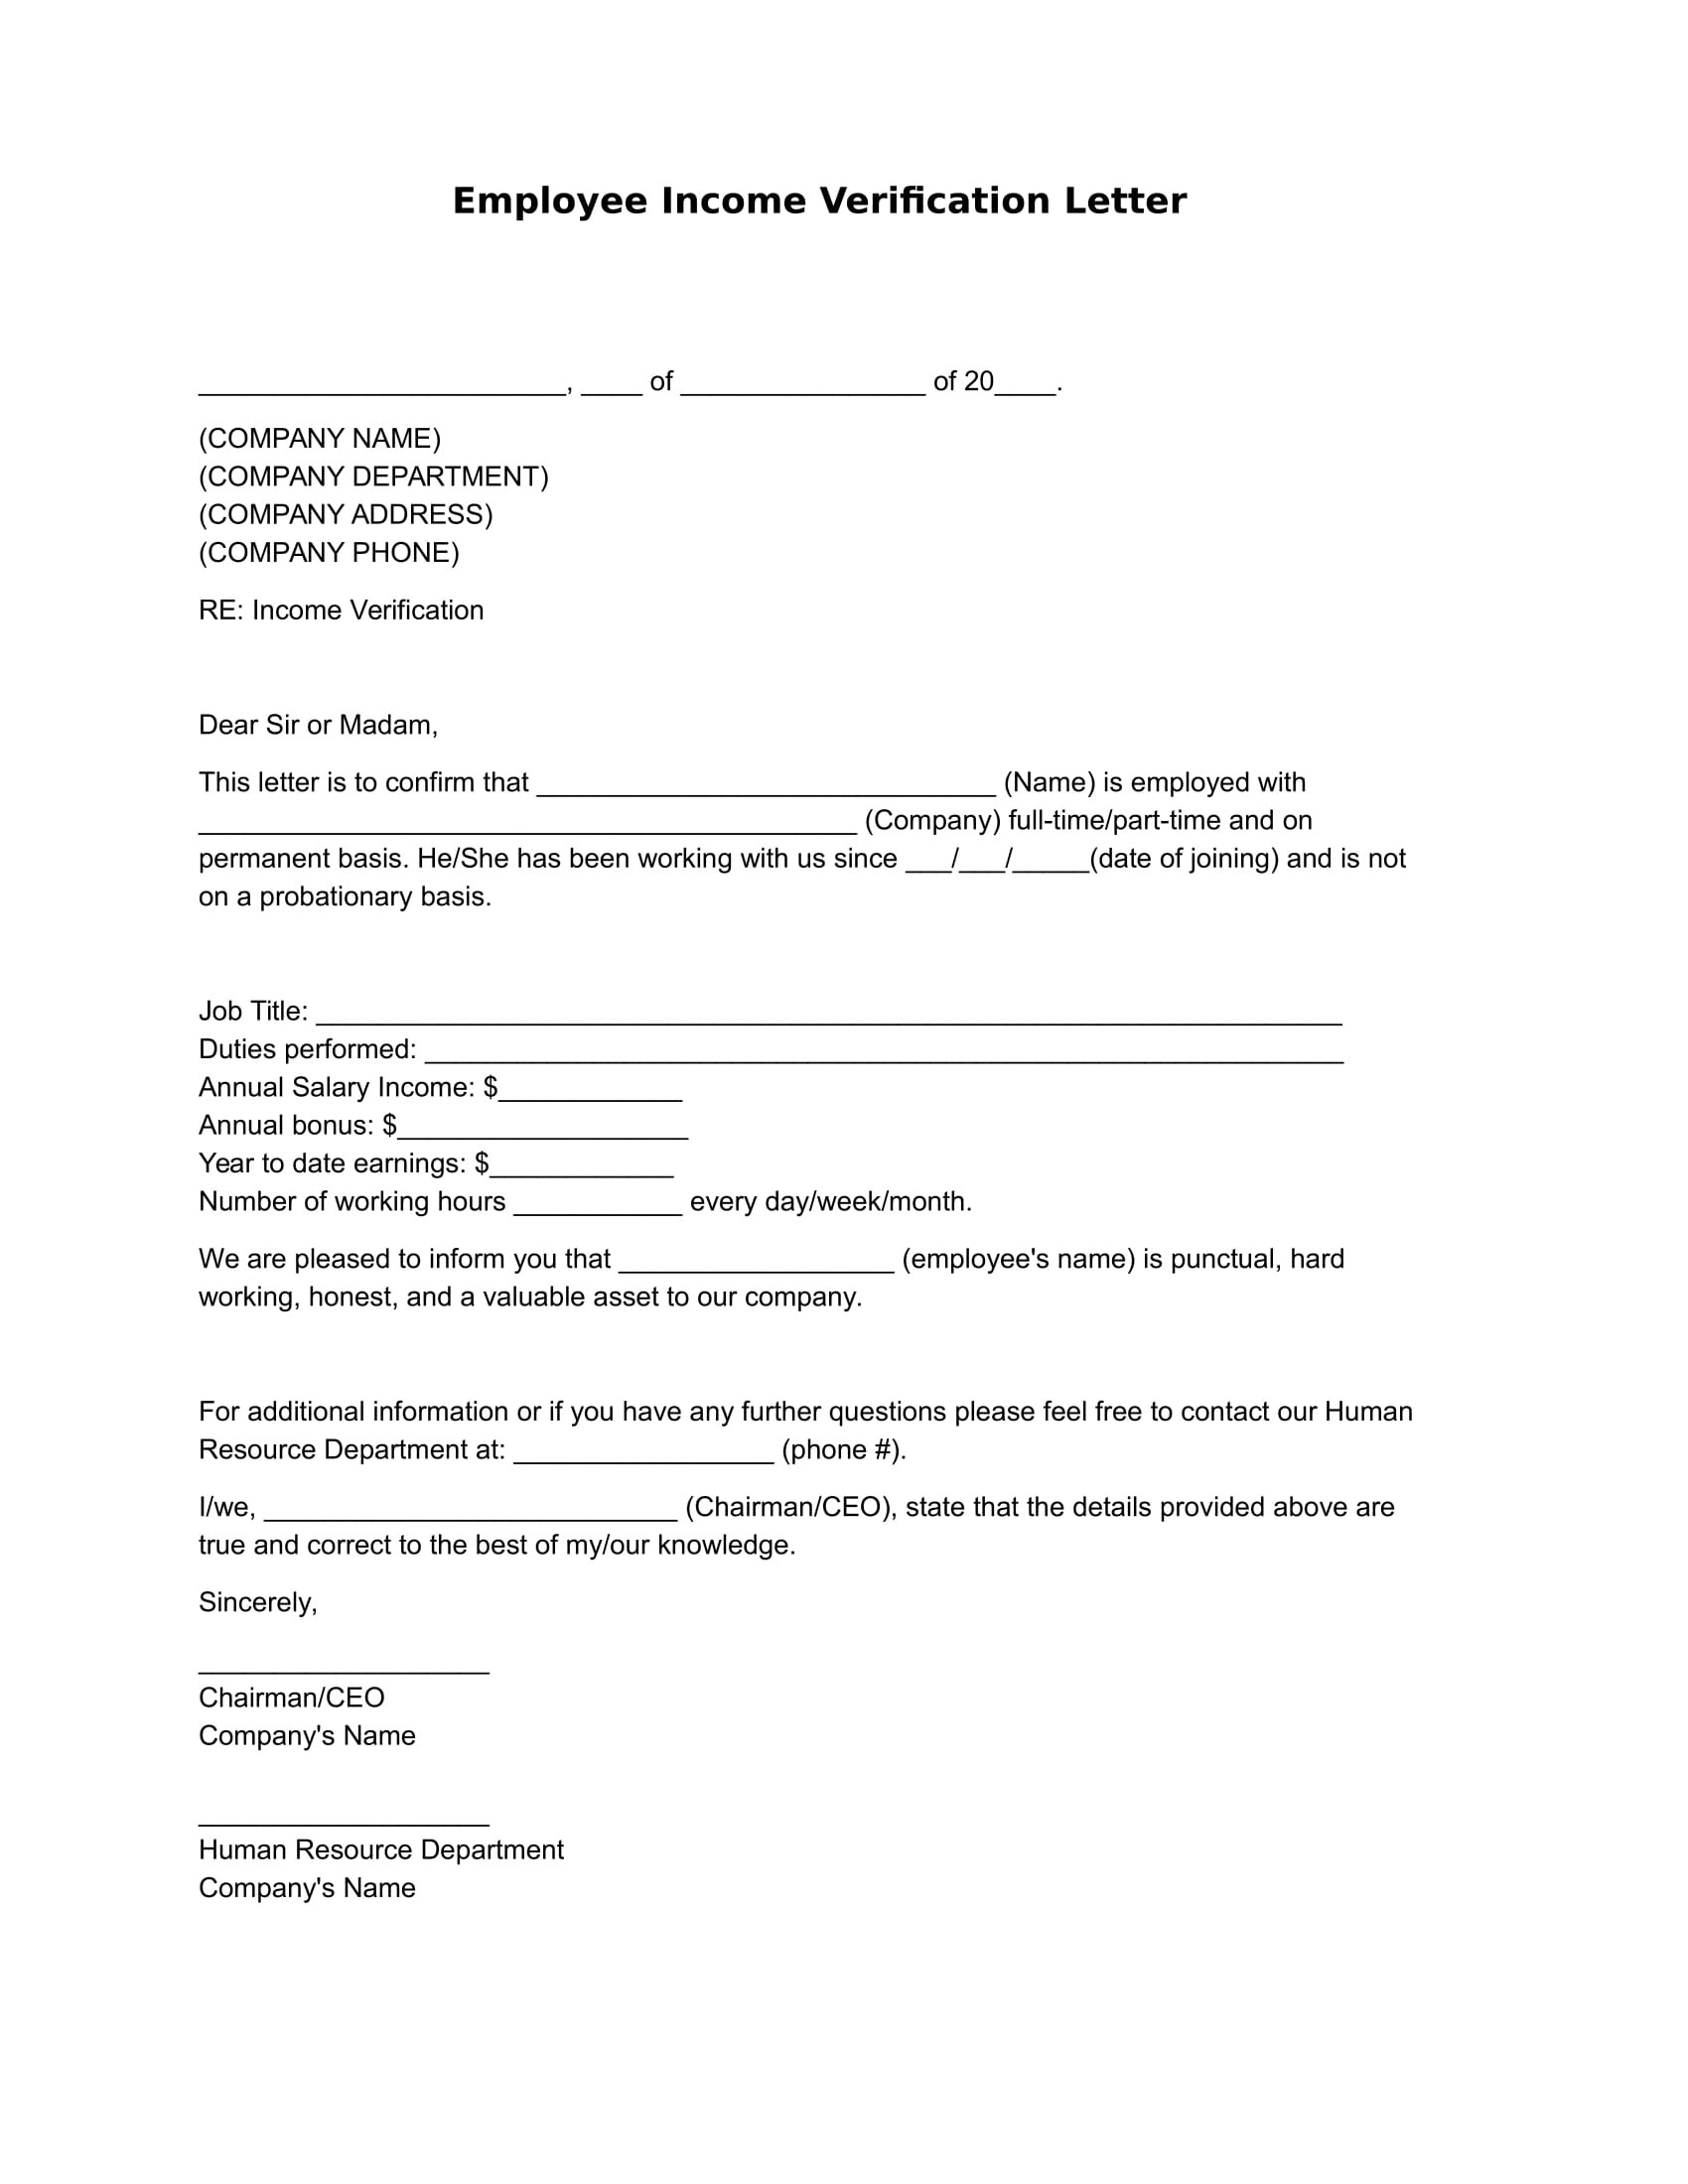 Employee Income Verification Letter Example